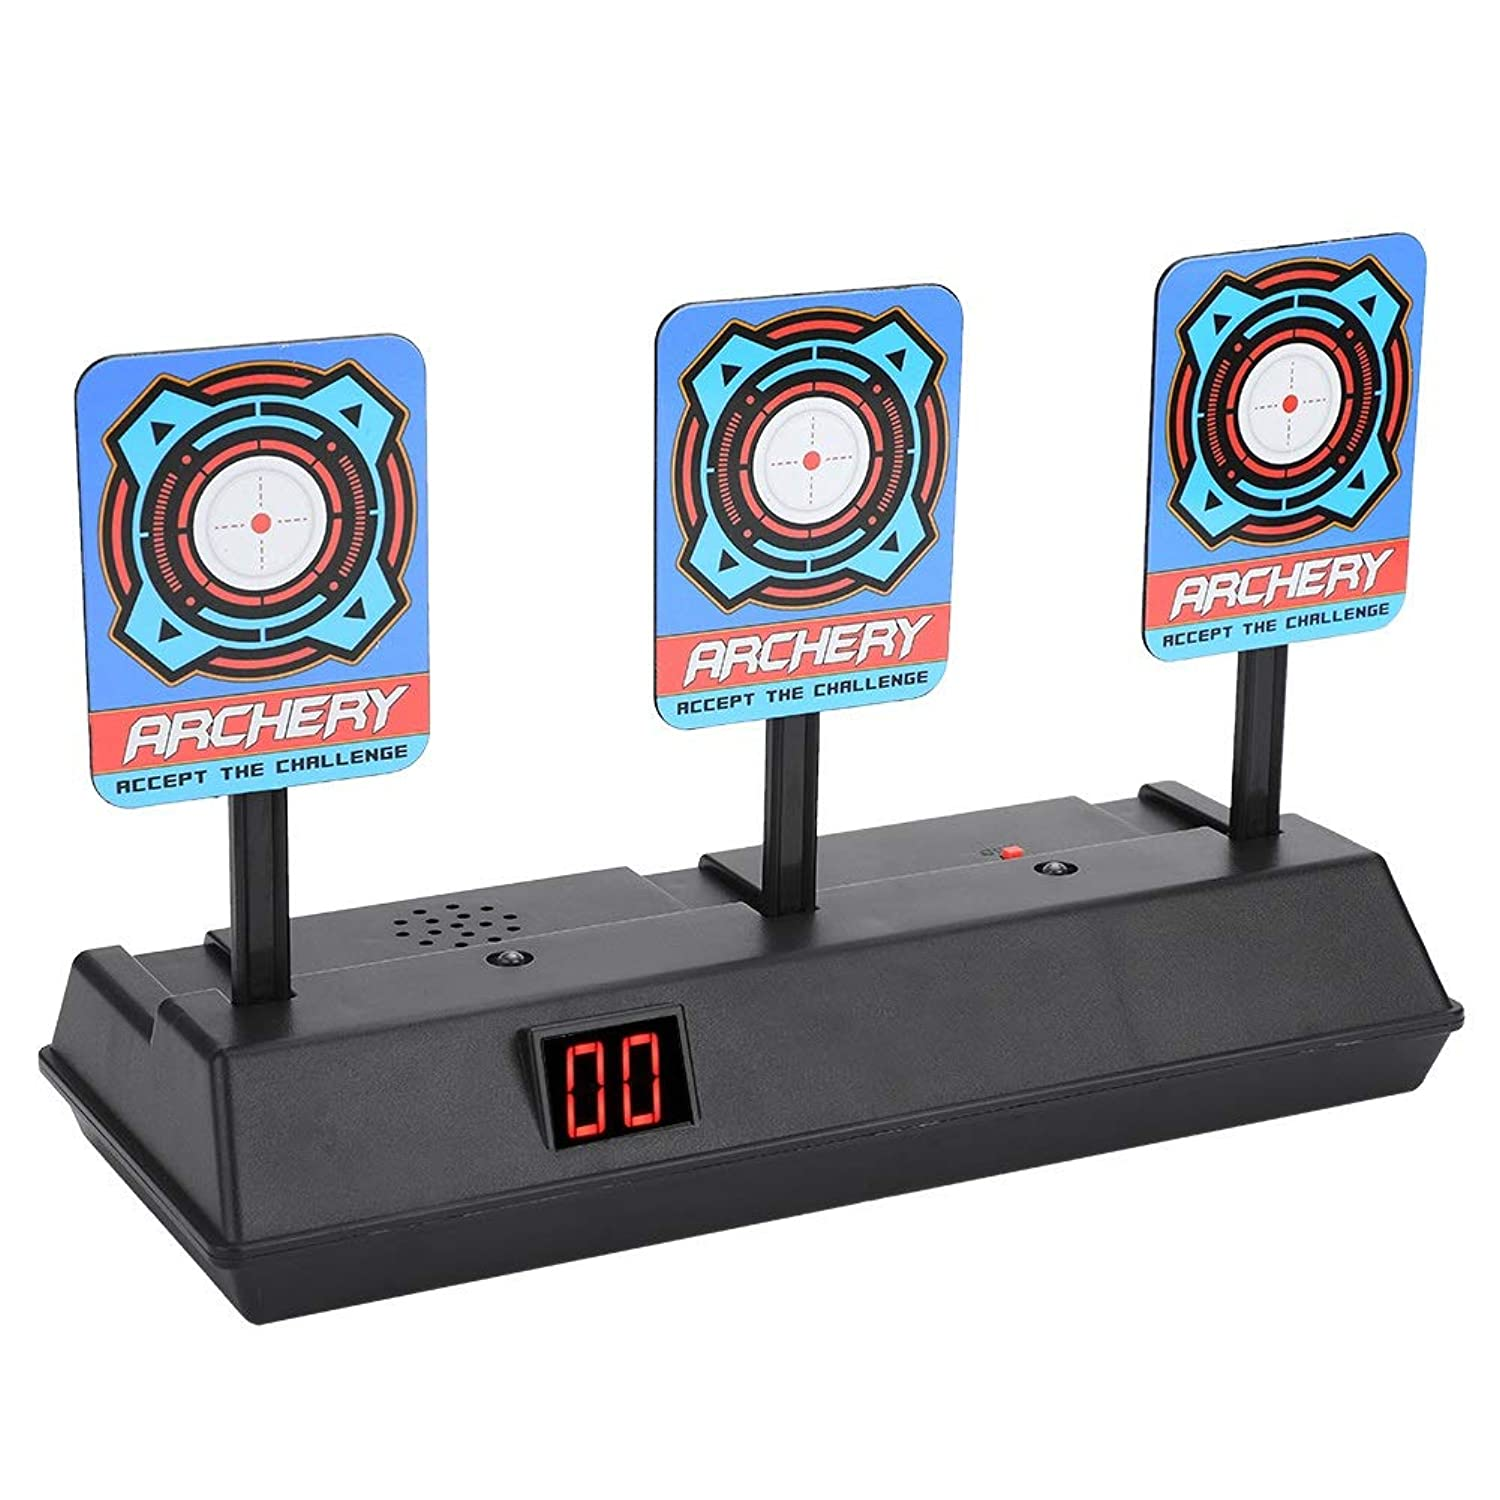 Dewin Electric Target Toy Gun Electric Score Target Automatic Restore Accessory, for Soft Bullet Gun Toy uxoemw1893353